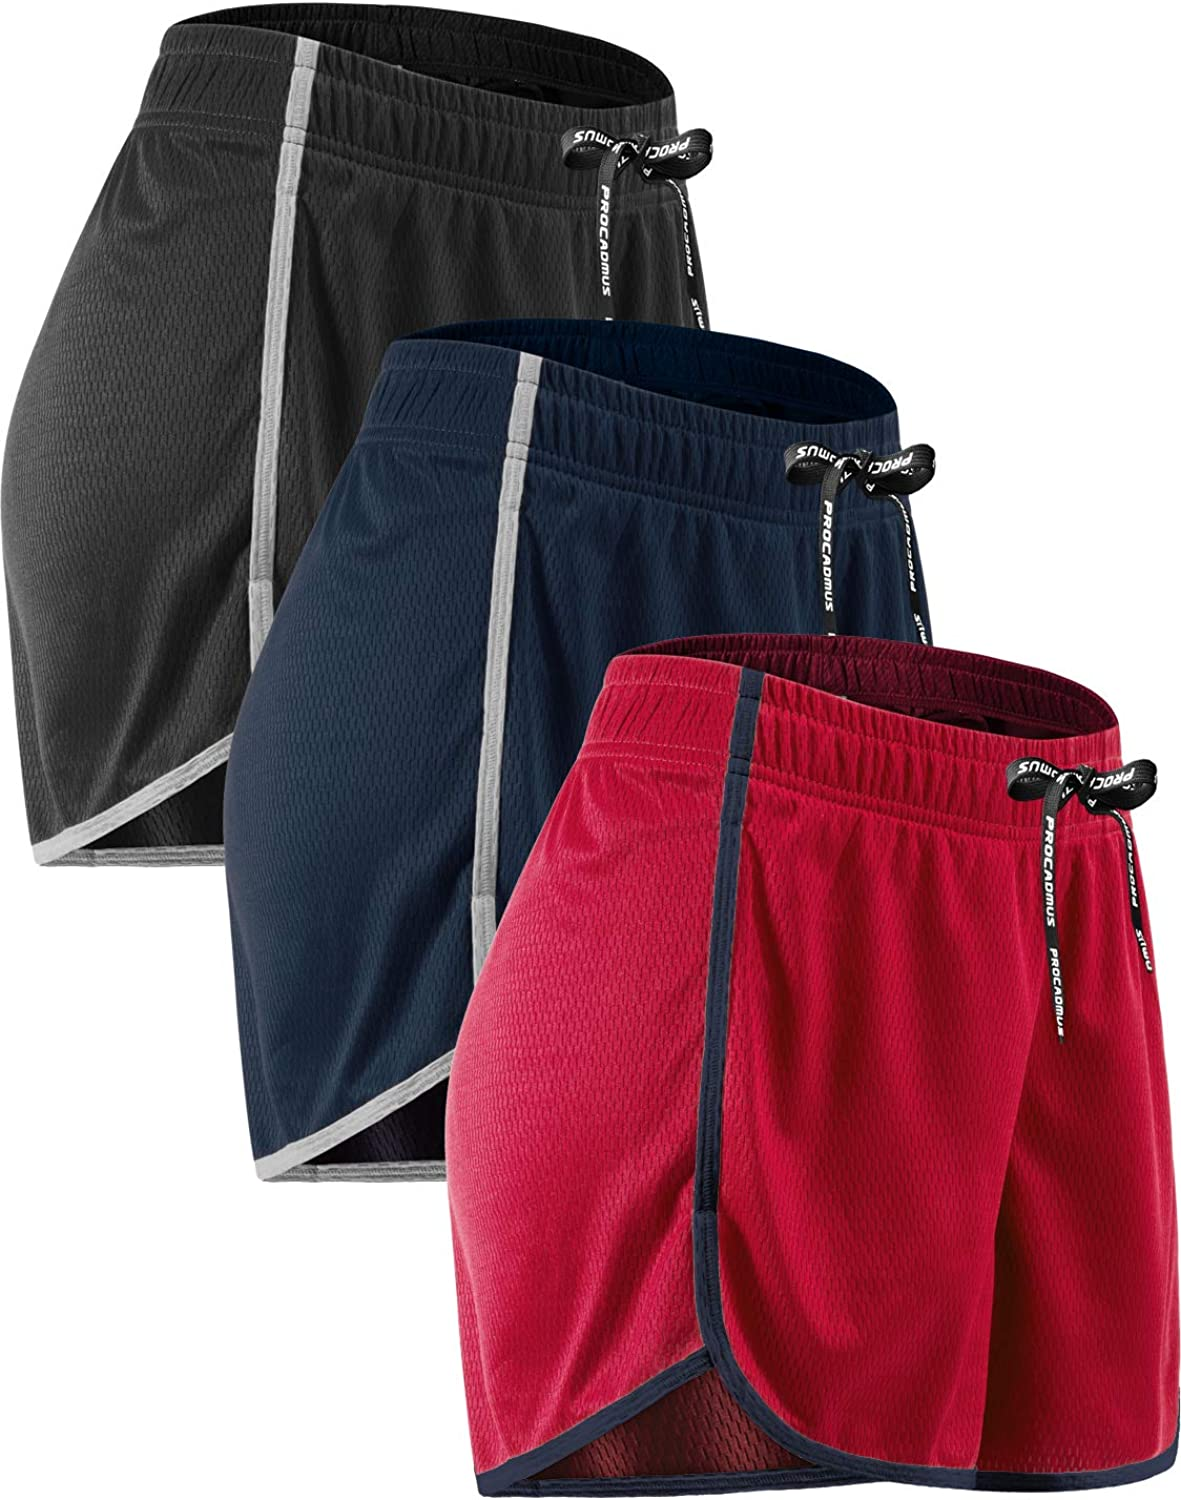 CADMUS Women's Now Outlet sale feature on sale Mesh Leisure Running Workout Athletic Shorts for